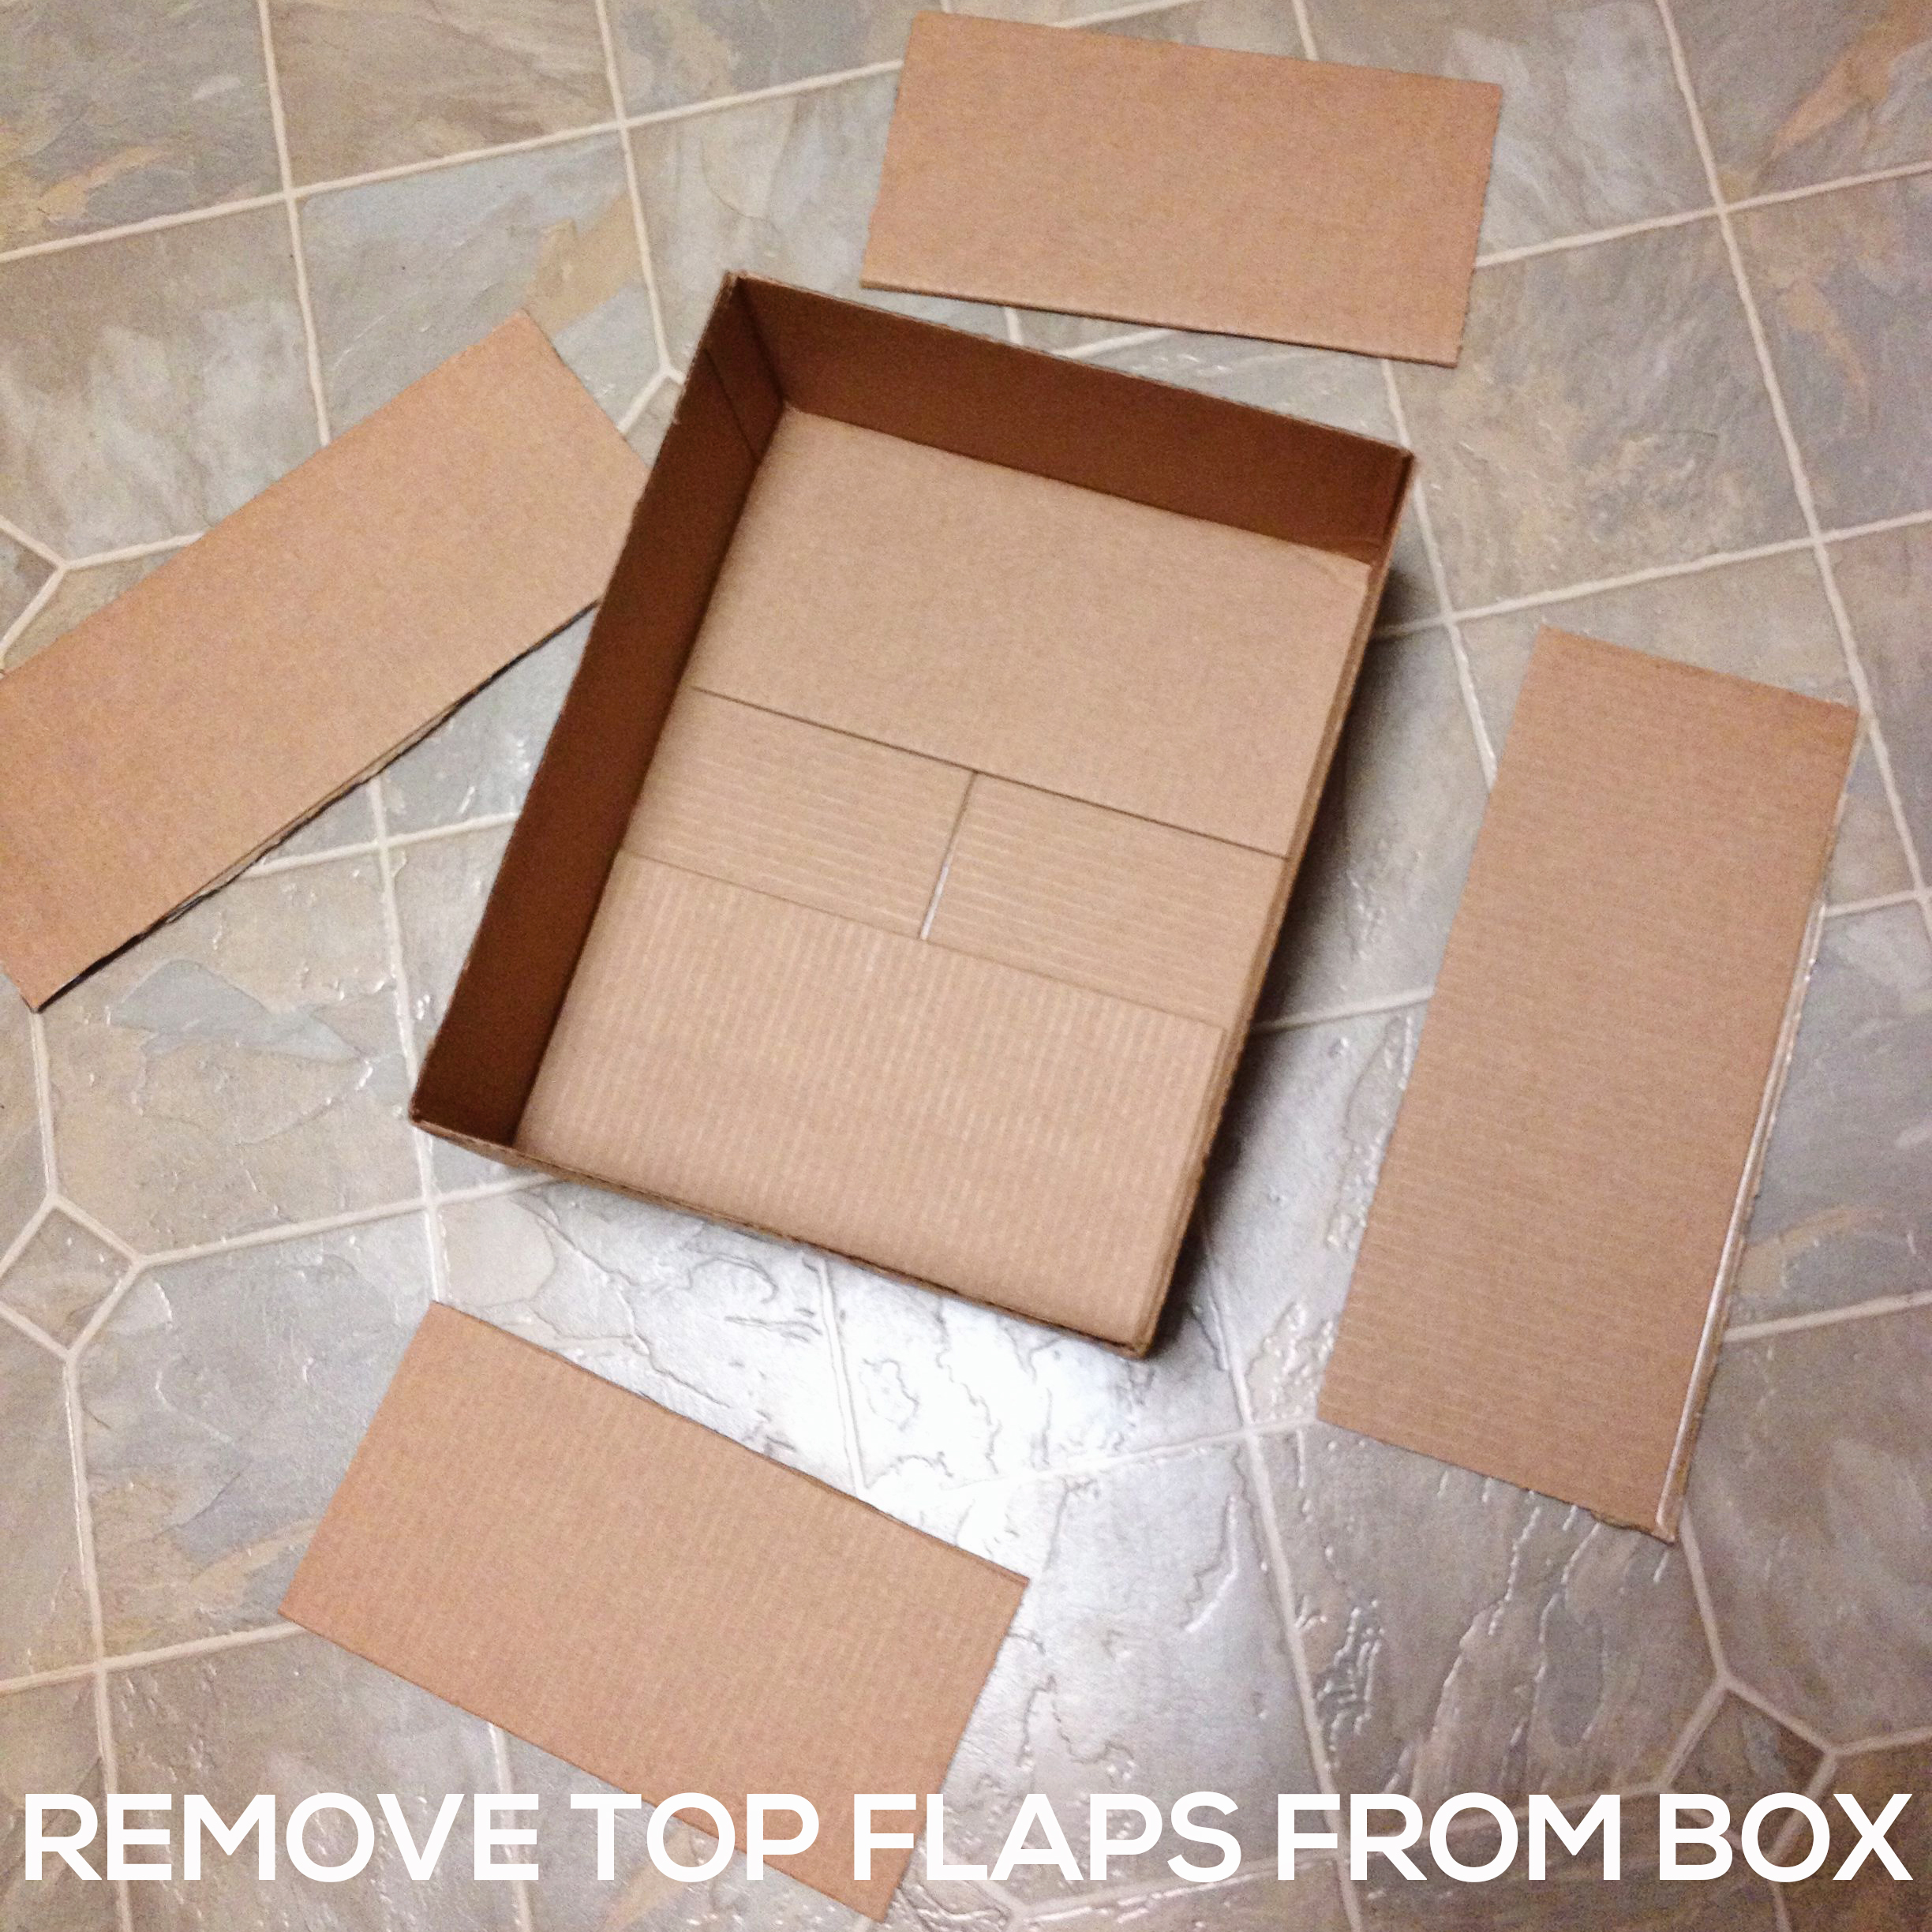 REMOVE-TOP-FLAPS Make a DIY Box Airplane Prop for Newborn Photography Guest Bloggers Photography Tips Uncategorized